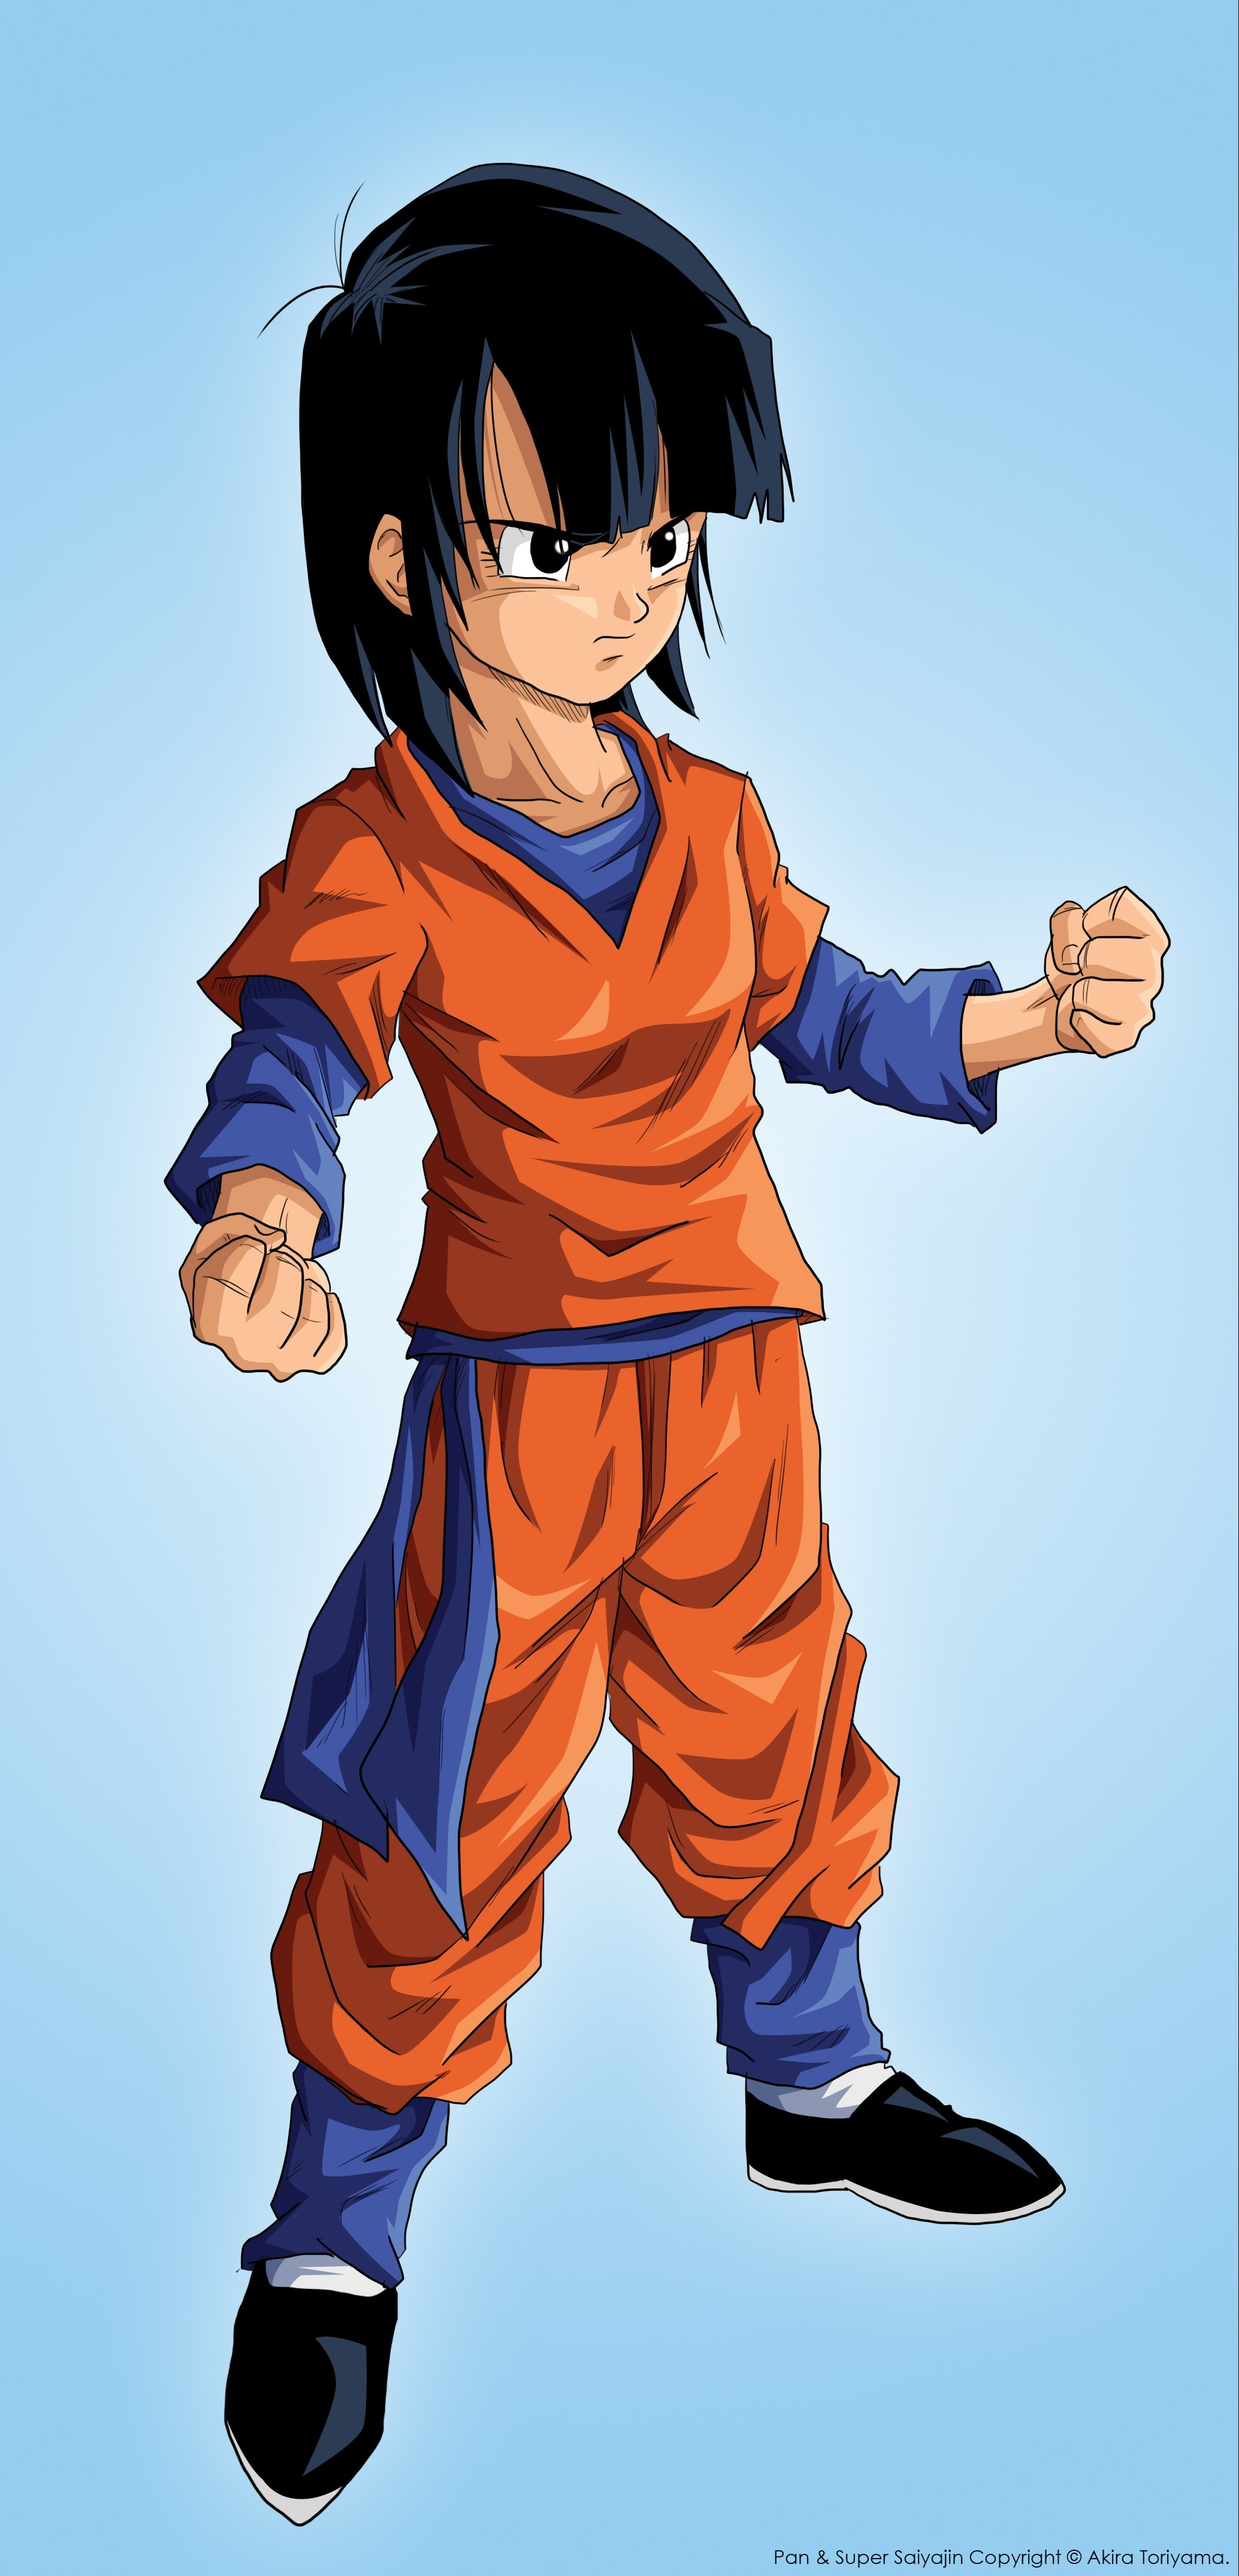 Dbz Pan Sexy http://sengook.com/pan-dbz-dress-up.html